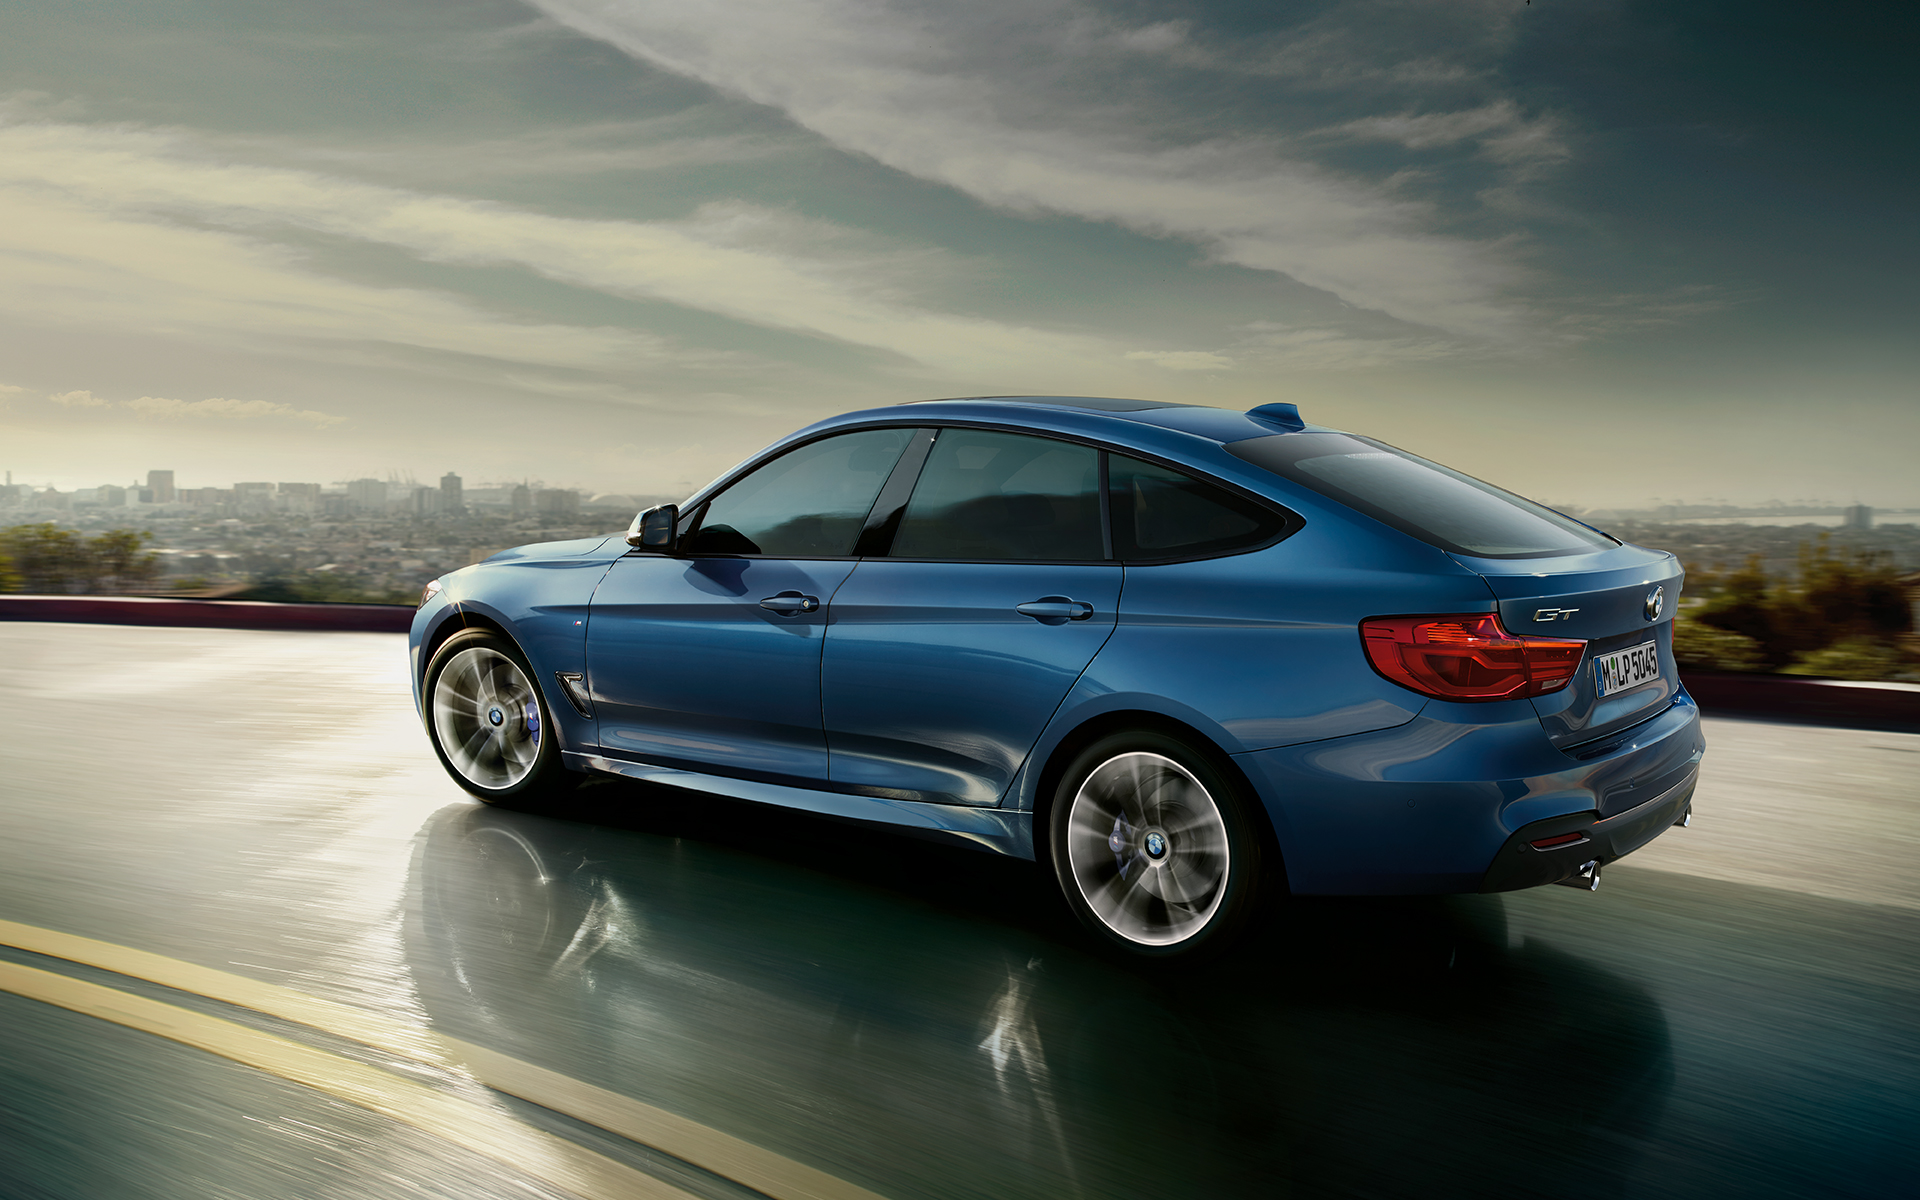 BMW 3 Series Gran Turismo: side view of car driving on highway with city scapes background.